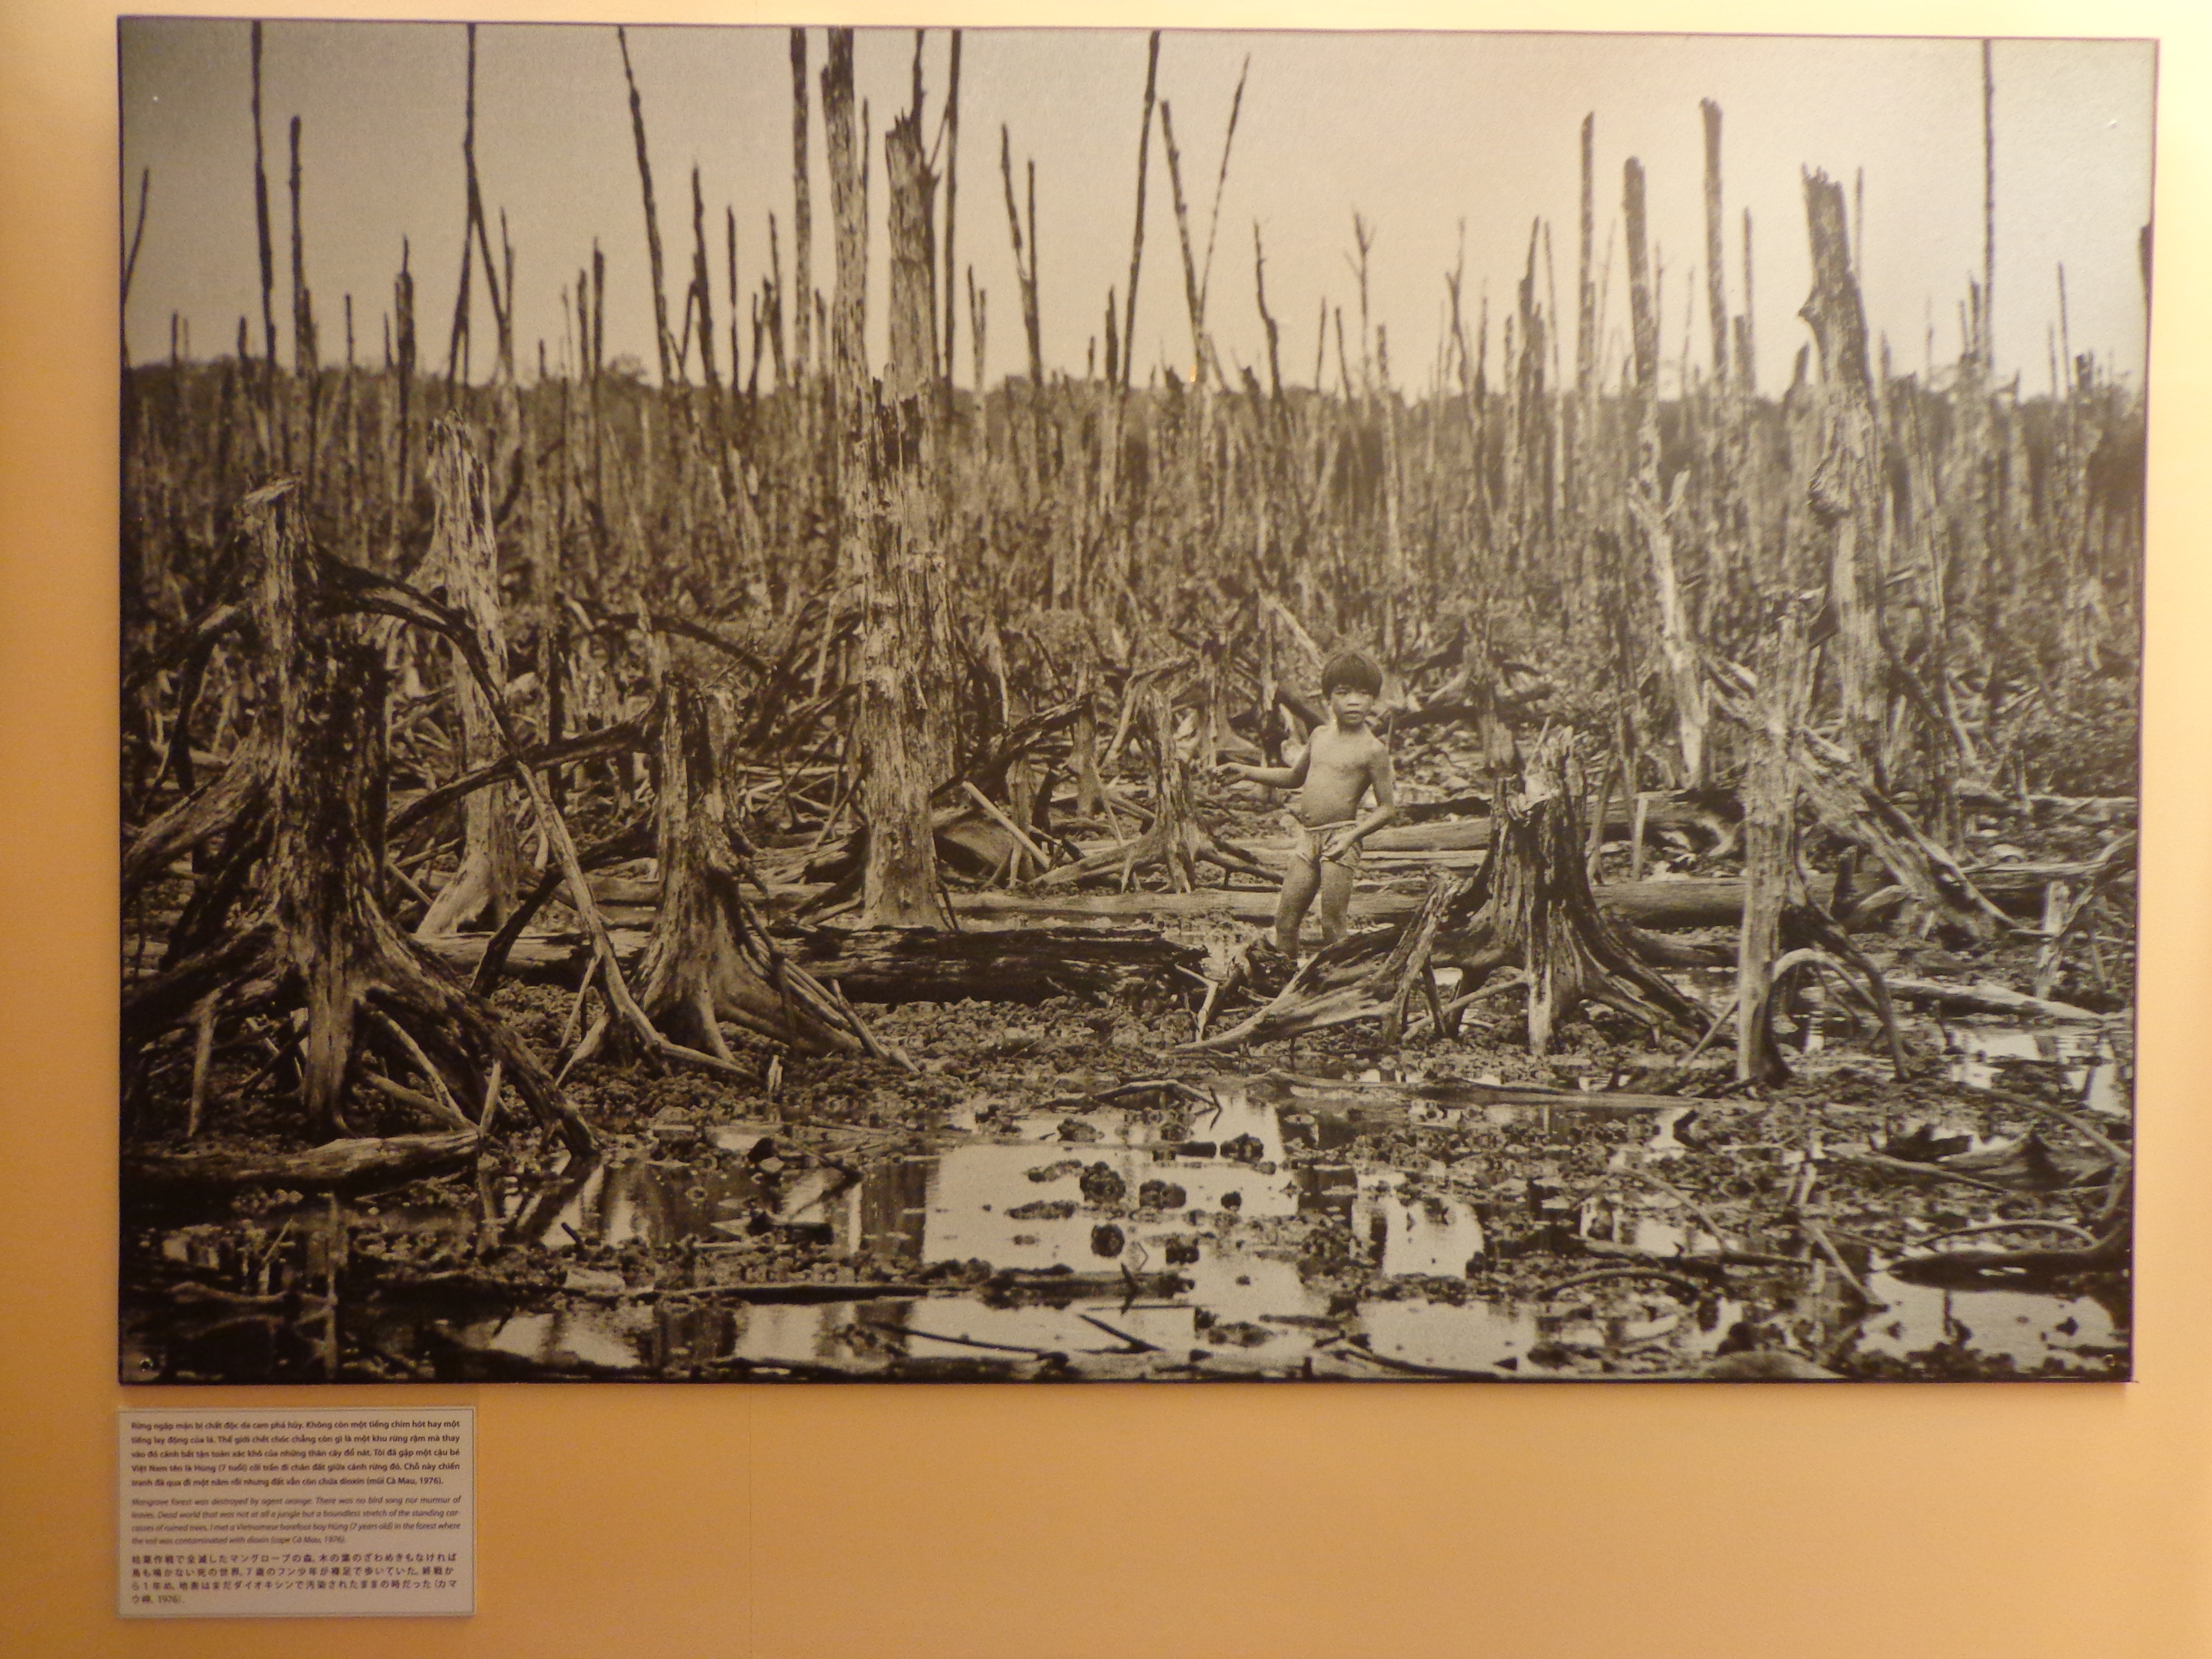 This photograph by Goro Nakamura shows the devastation of mangrove during Agent Orange.